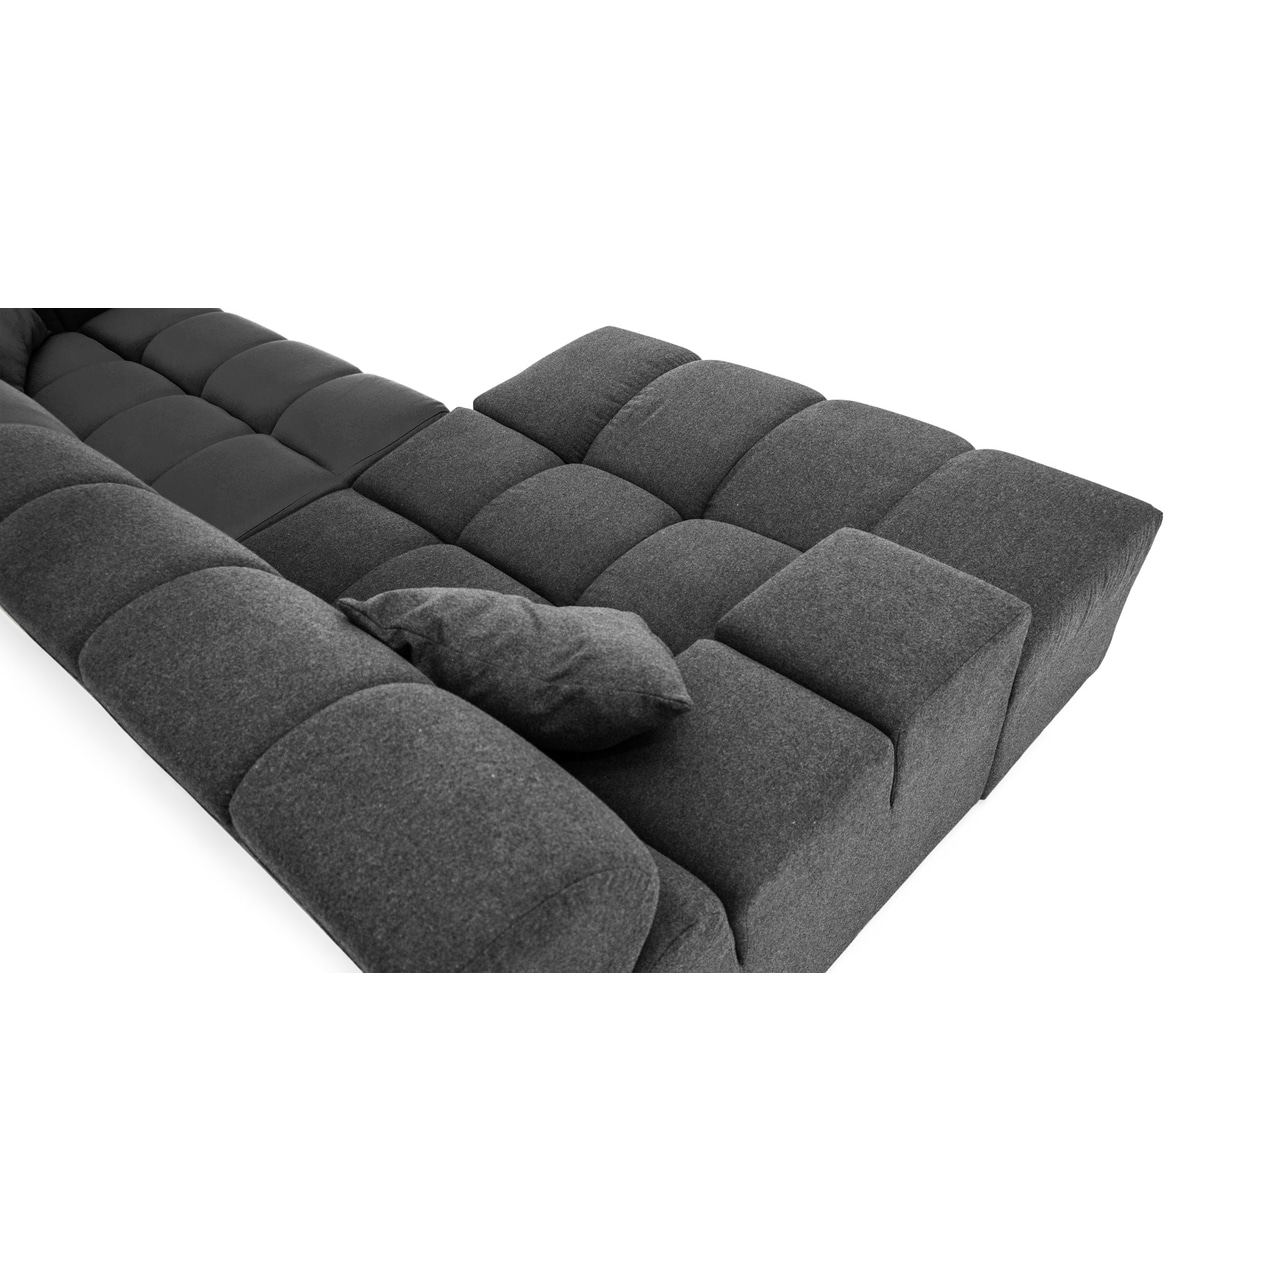 Karl Cubix Modern Modular Premium Cashmere Left Sofa Sectional Free Shipping Today 12776877